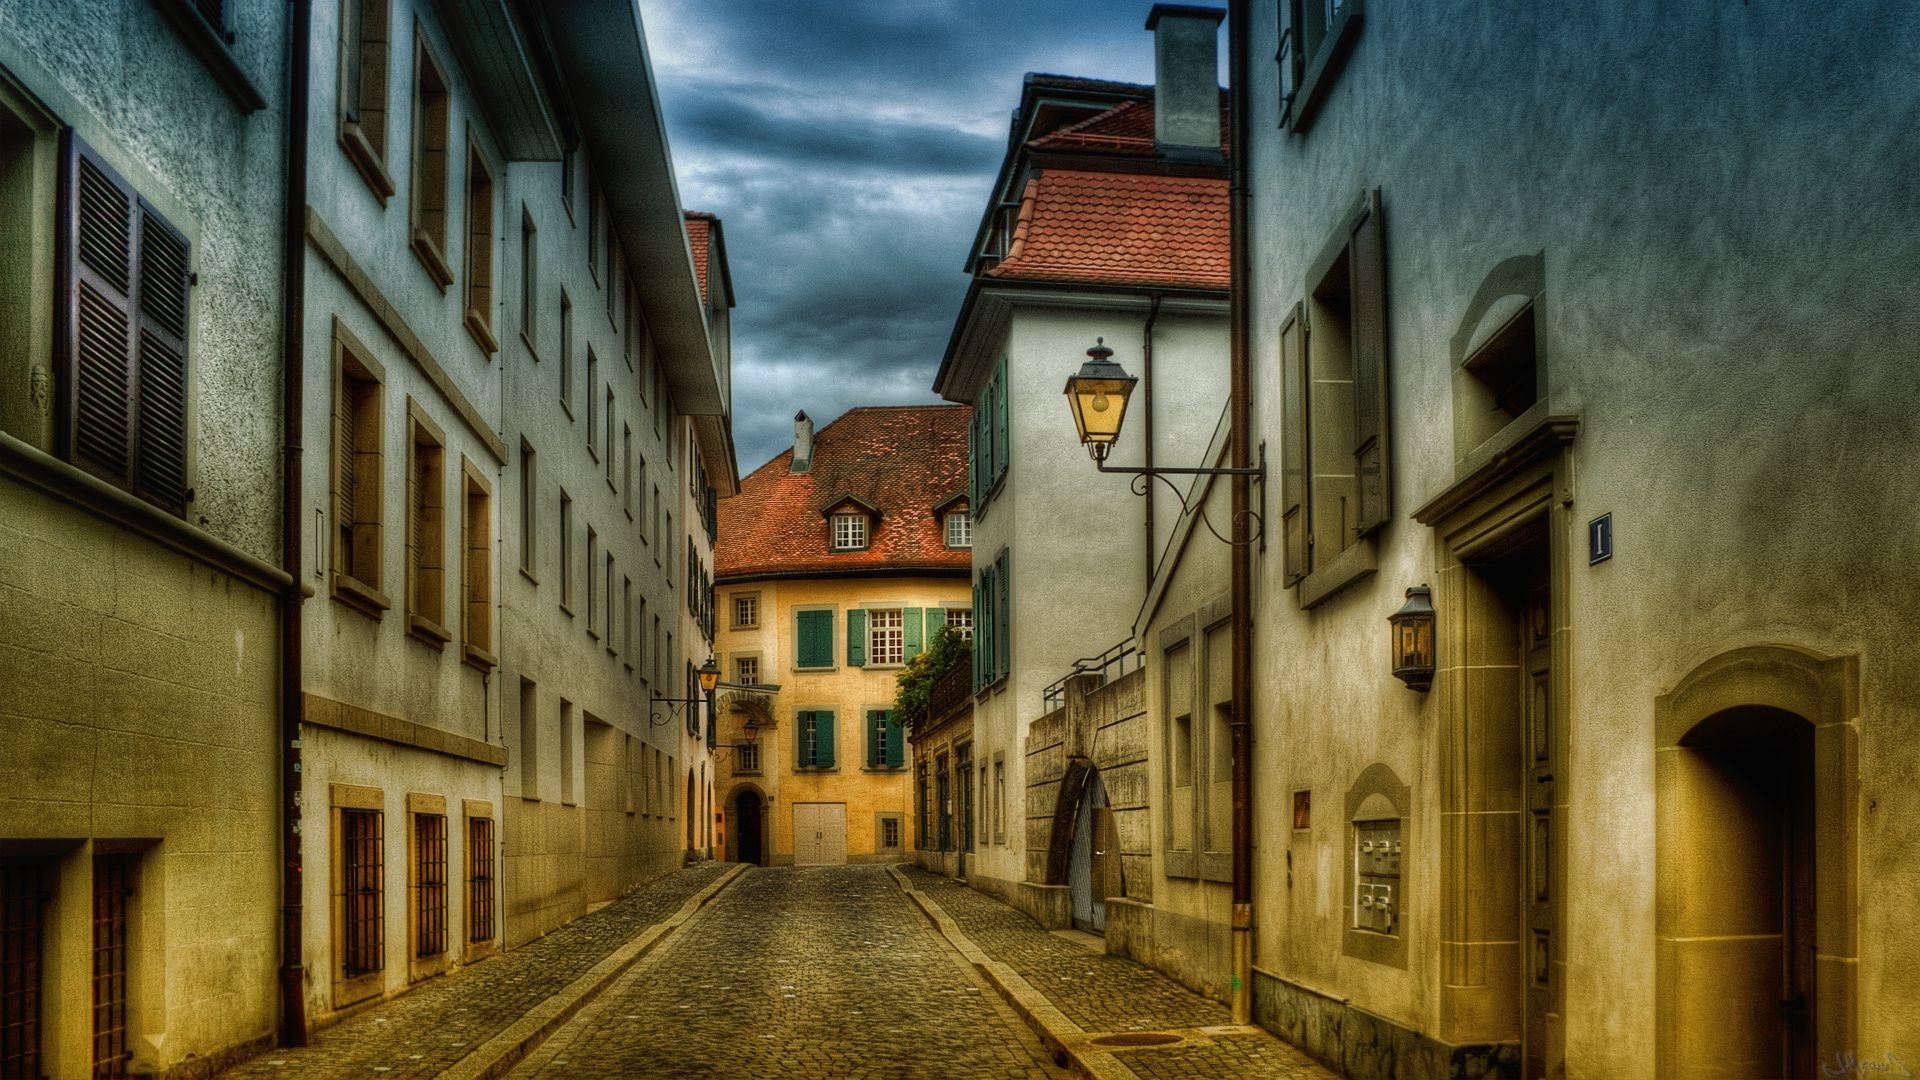 city street architecture house old building travel urban window alley narrow town gothic vintage light